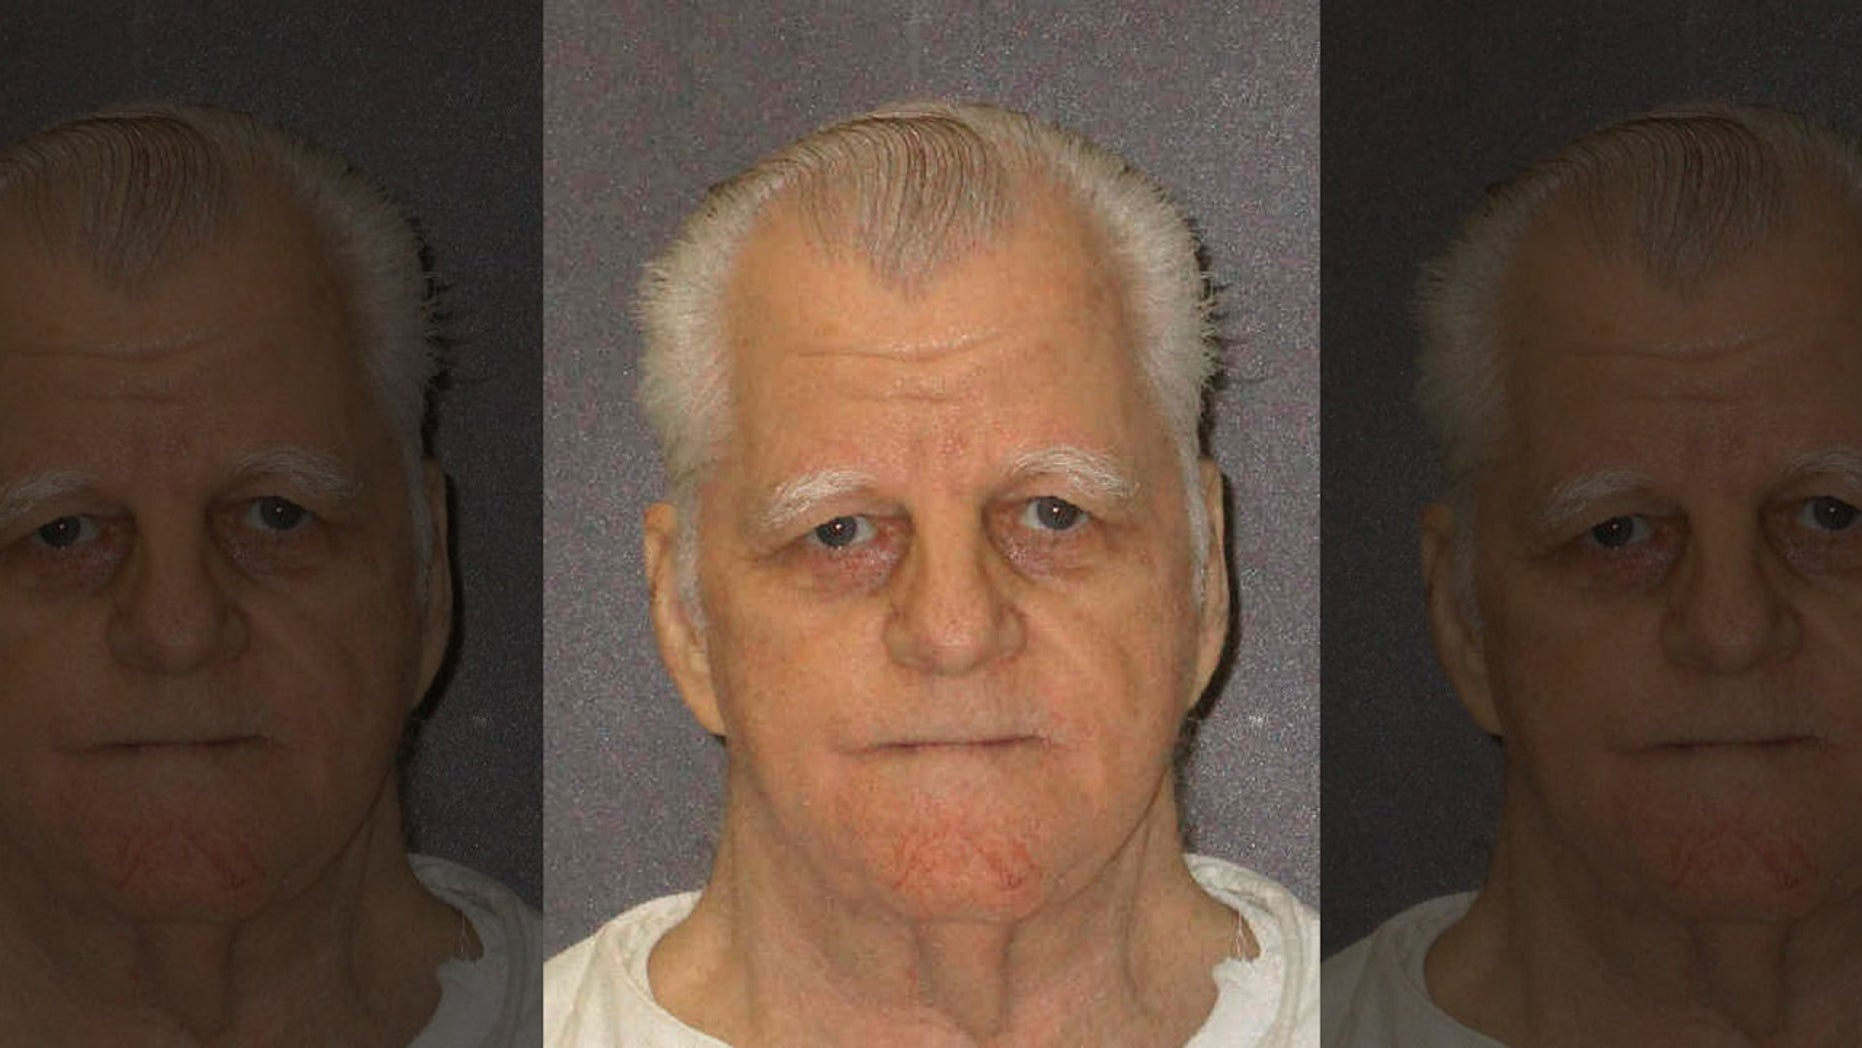 Billie Wayne Coble was set to be executed Thursday, Feb. 28, 2019, for fatally shooting his estranged wife's parents and her brother, who had been a police officer.